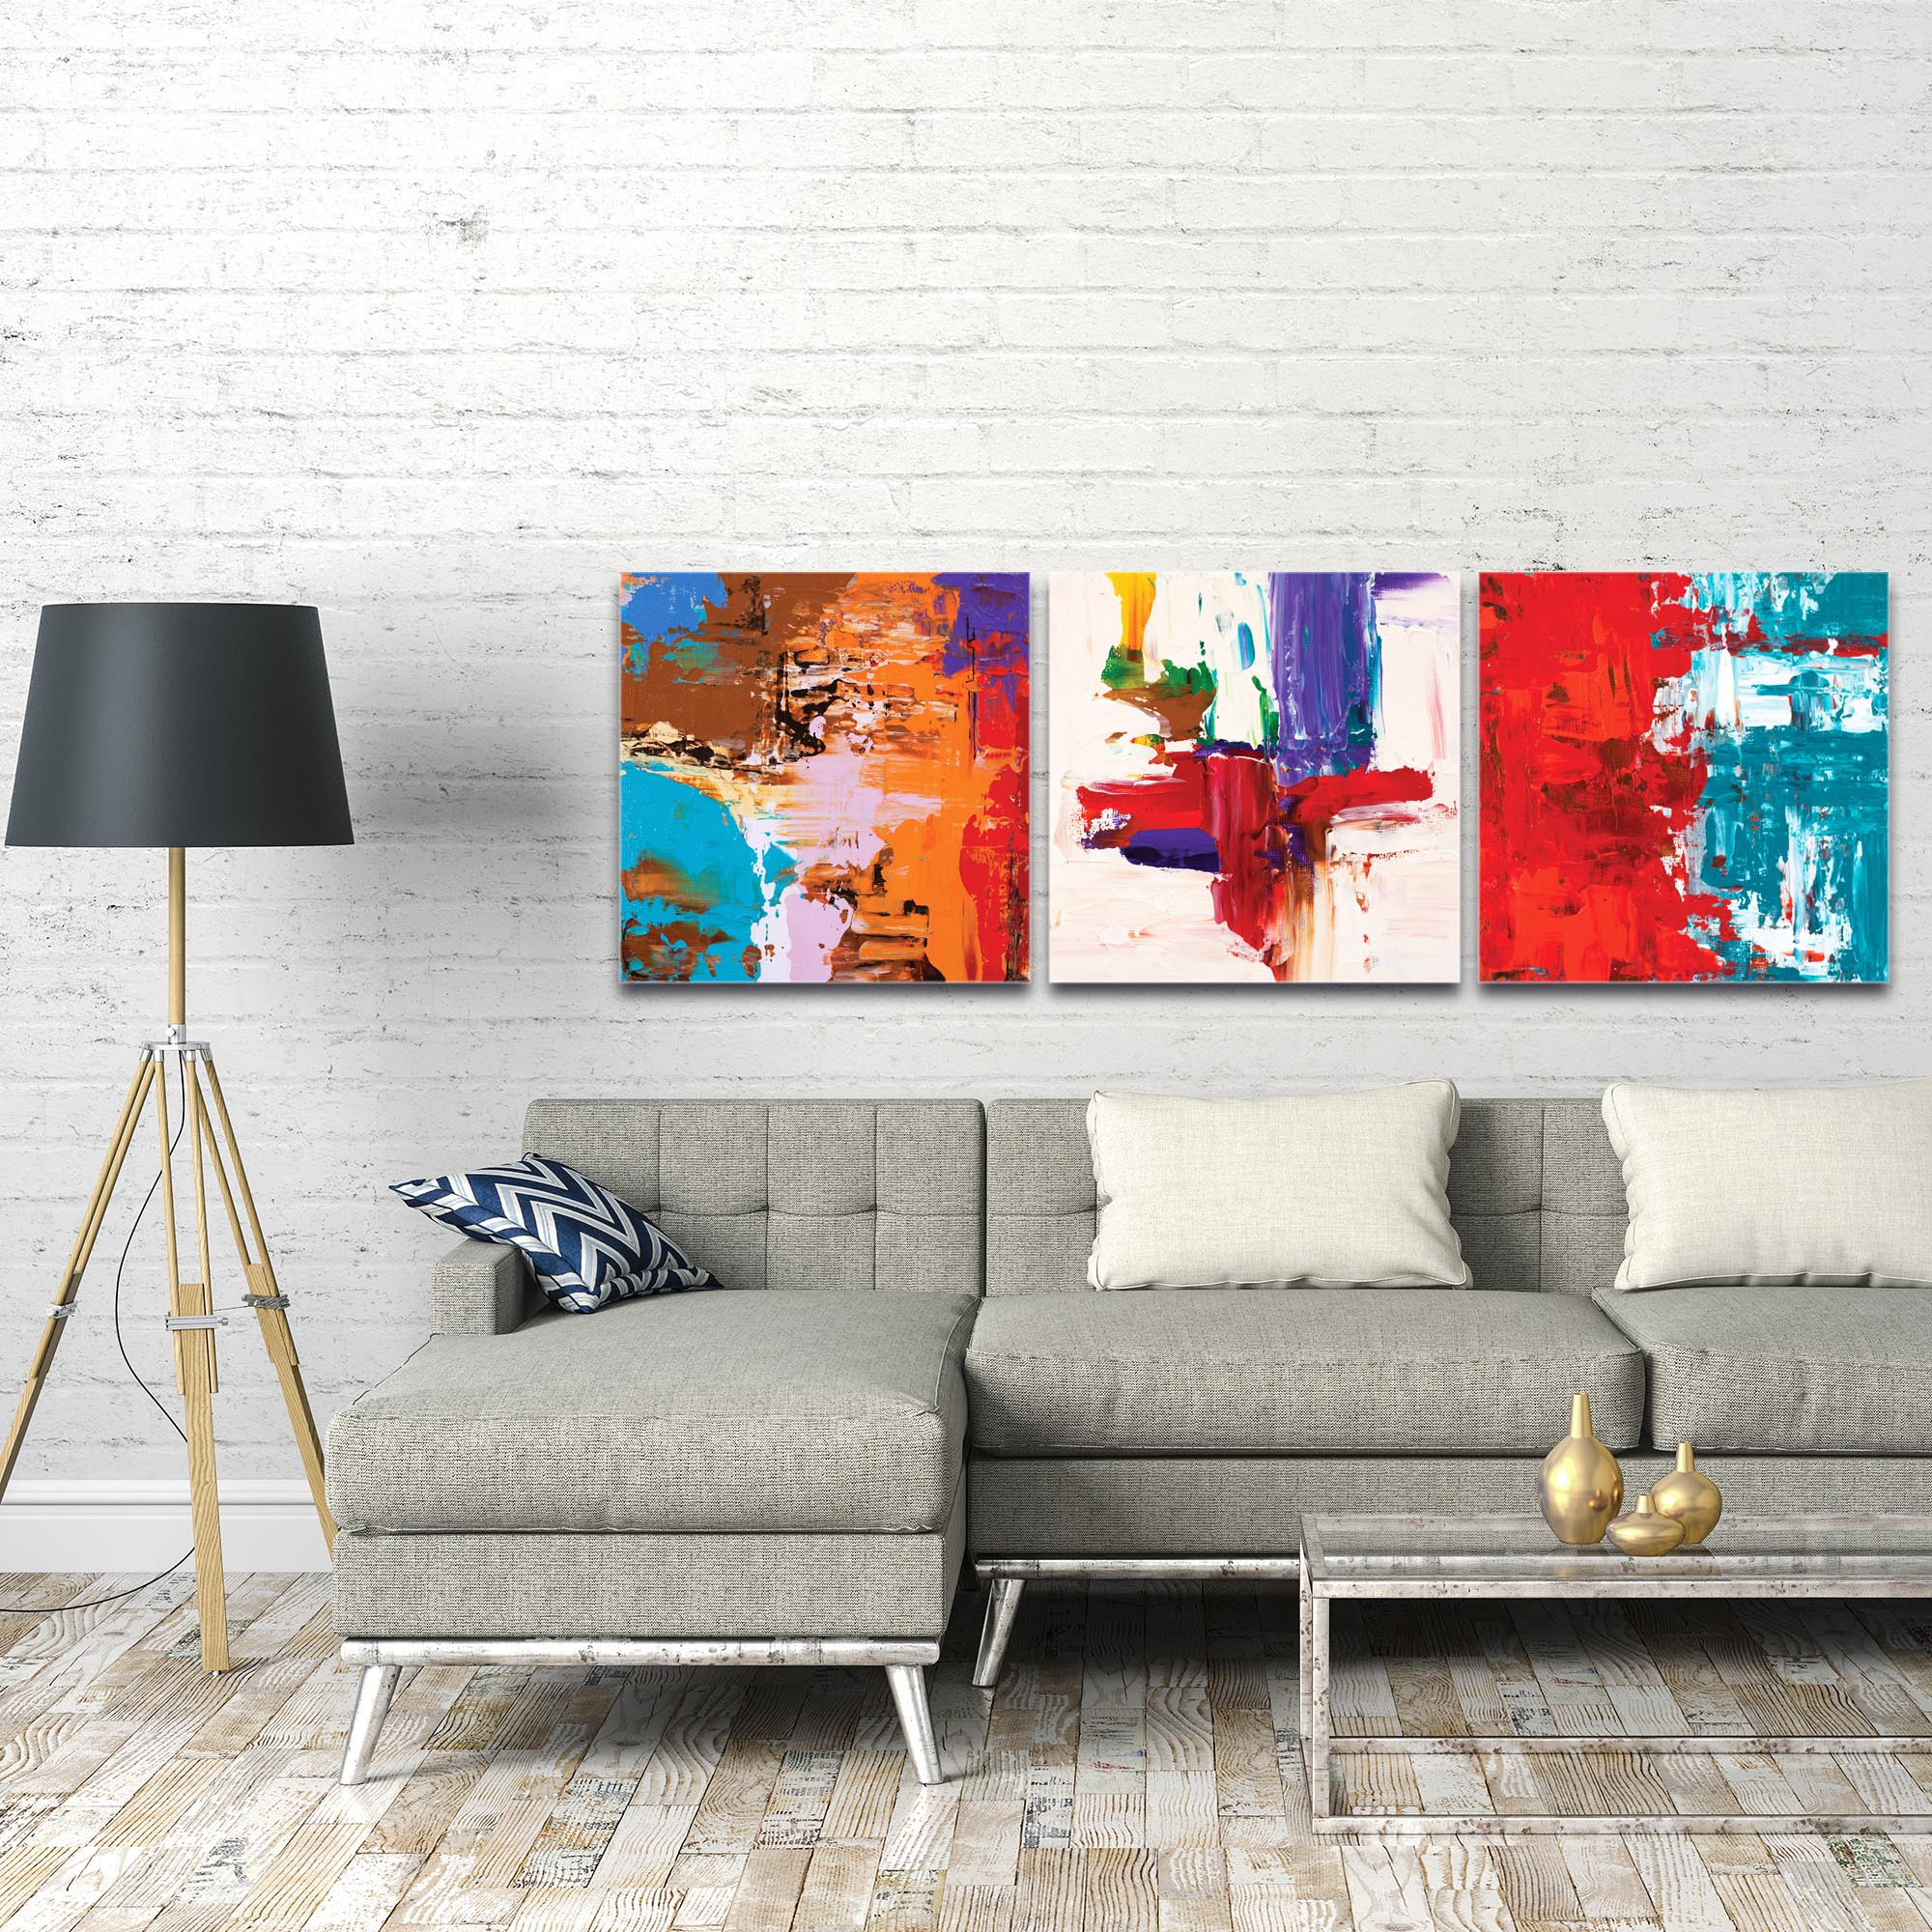 Abstract Wall Art 'Urban Triptych 5 Large' - Urban Decor on Metal or Plexiglass - Image 3